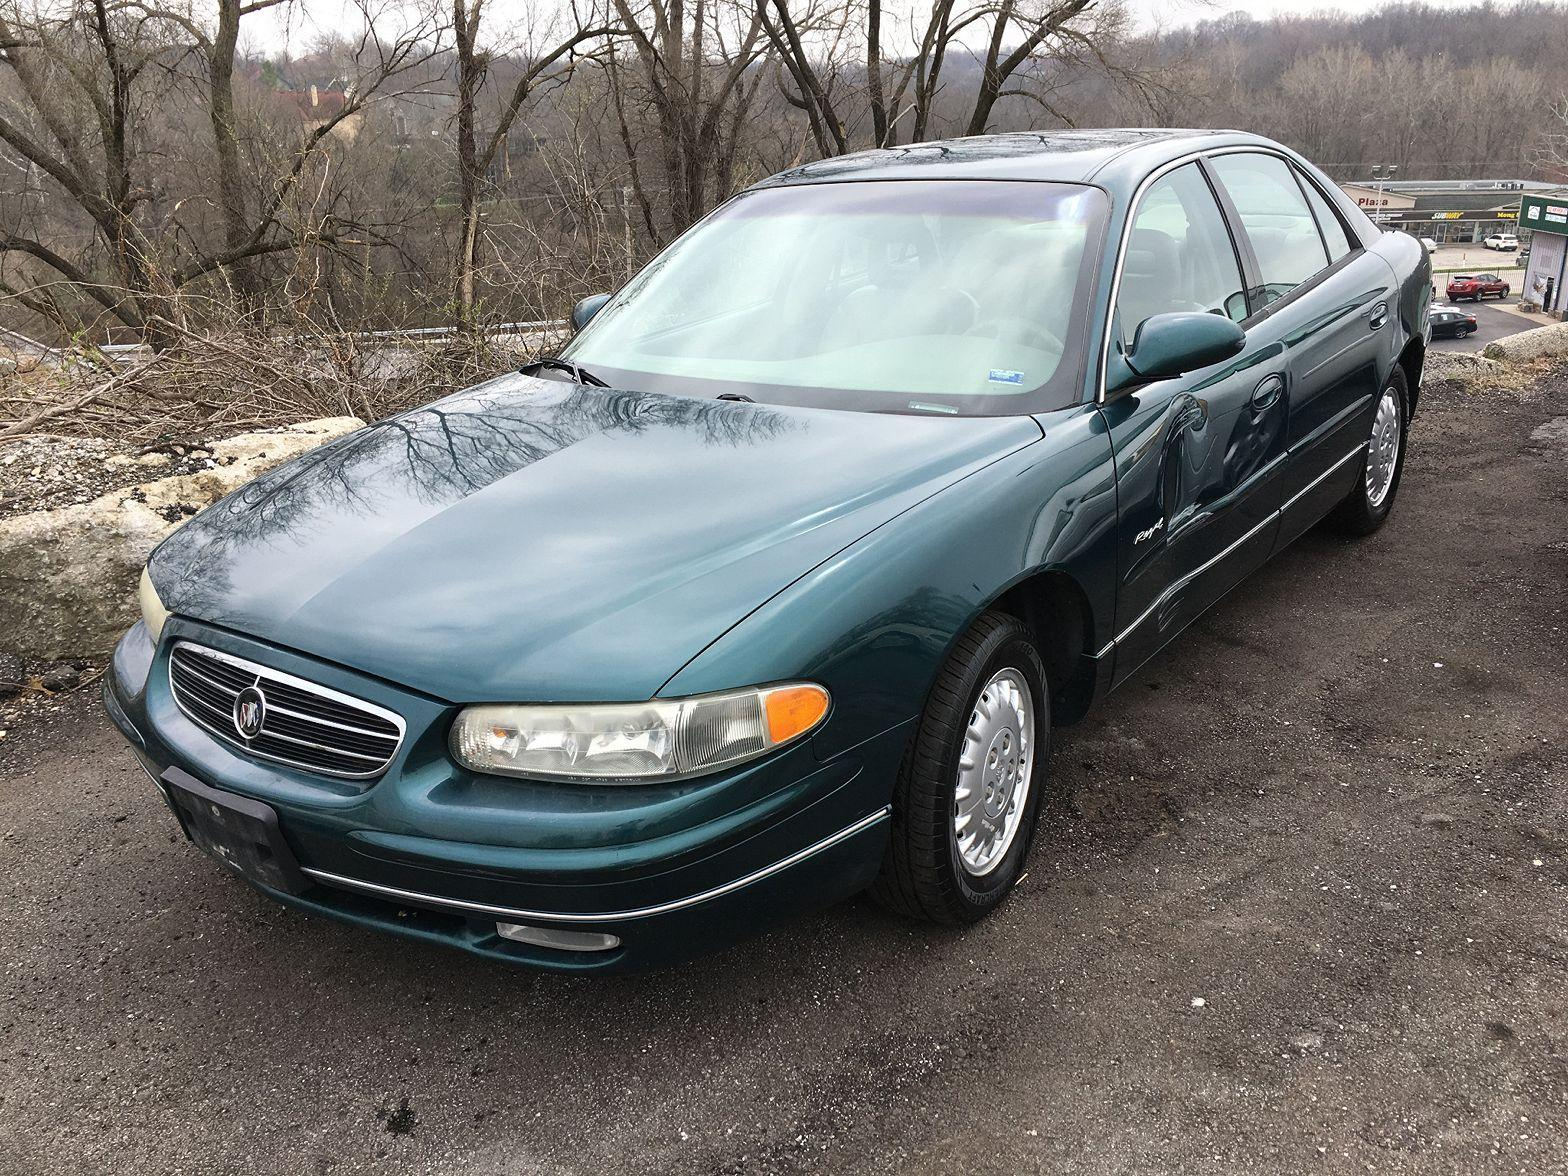 1997 Buick Regal $950